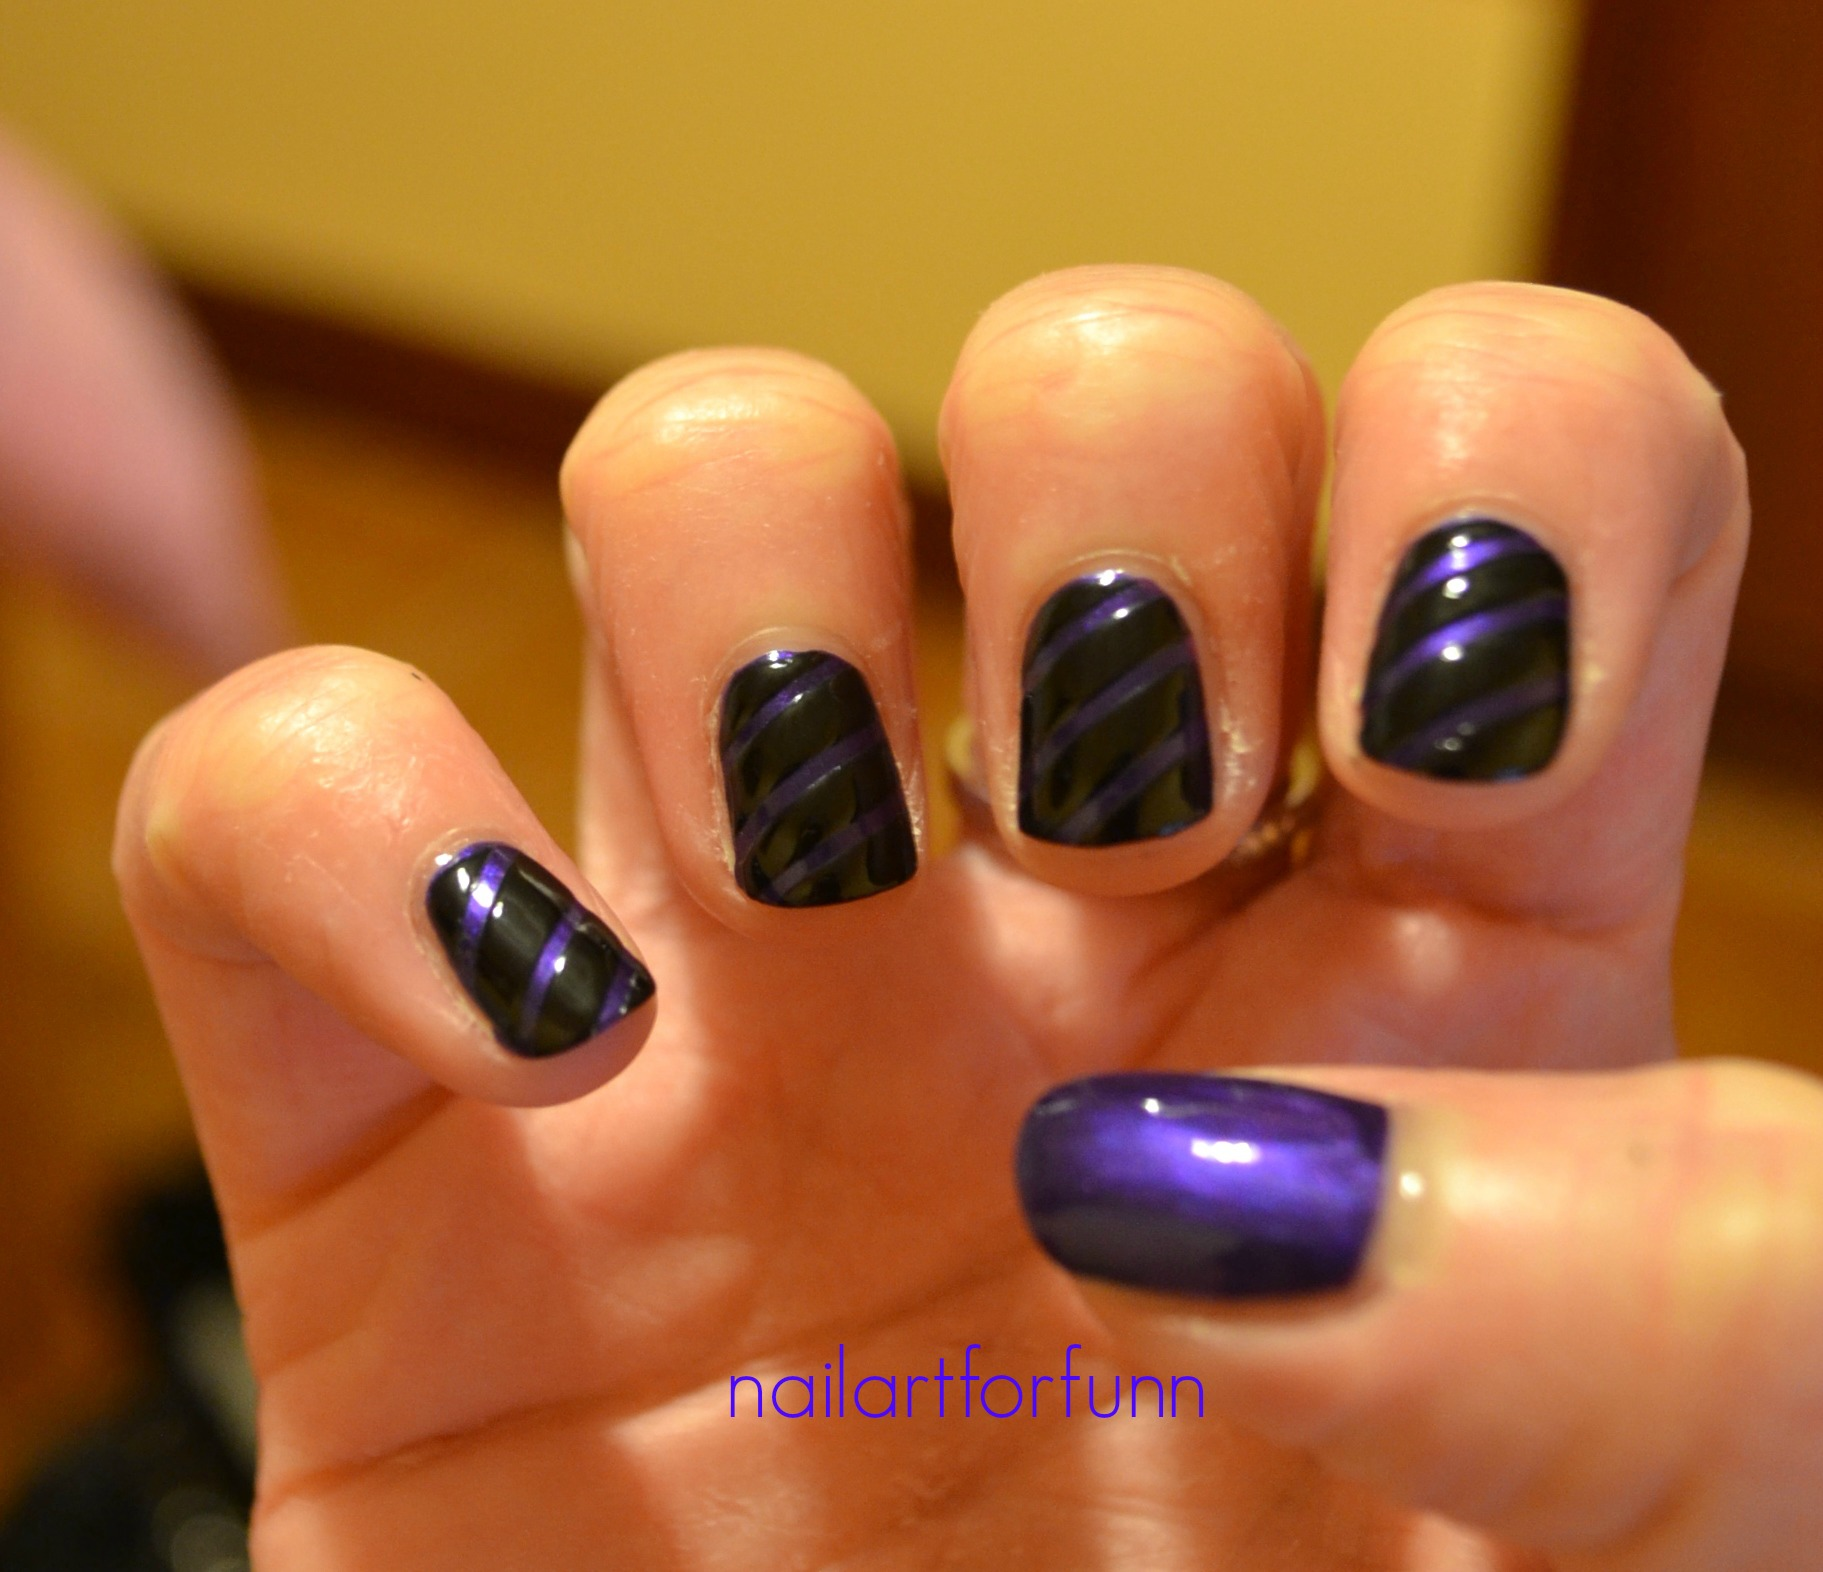 Black | Nailart for funn!